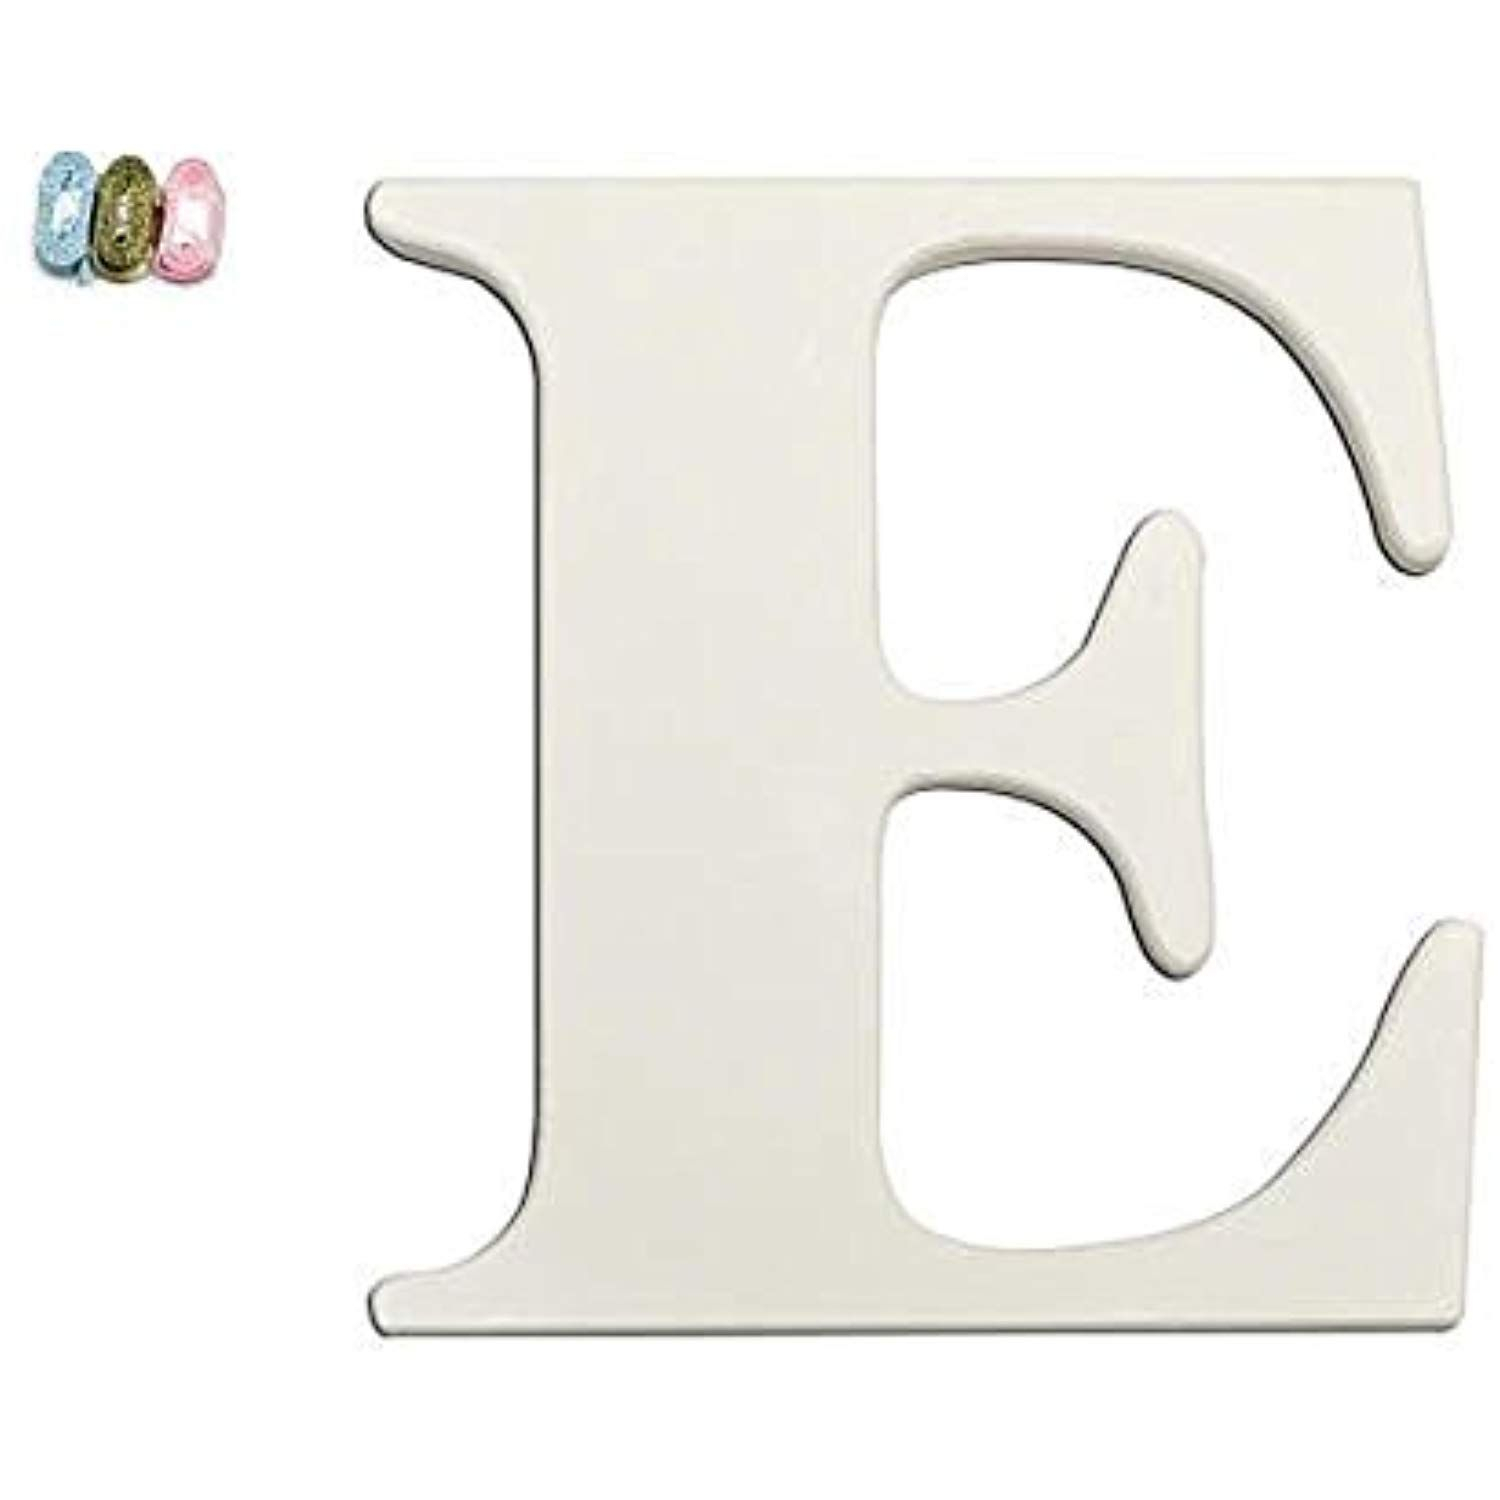 "Babies""r""us E Wooden Personalizable Letter Wall Decor White within Mccue 11.5"" Typewriter Text Wall Decor (Image 9 of 30)"